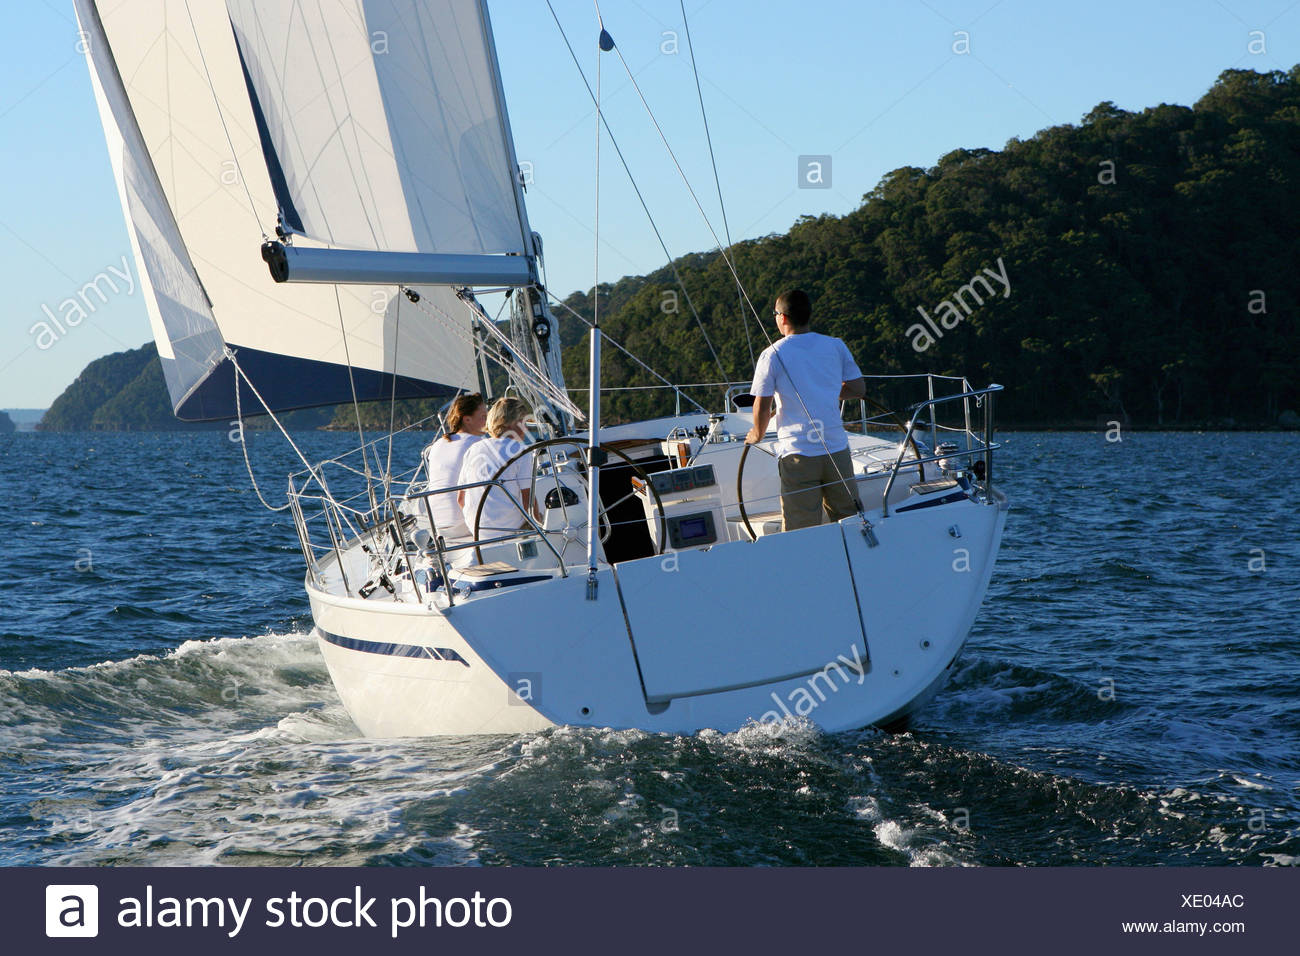 A yacht cruising on the North Shore from Sydney, Australia. - Stock Image